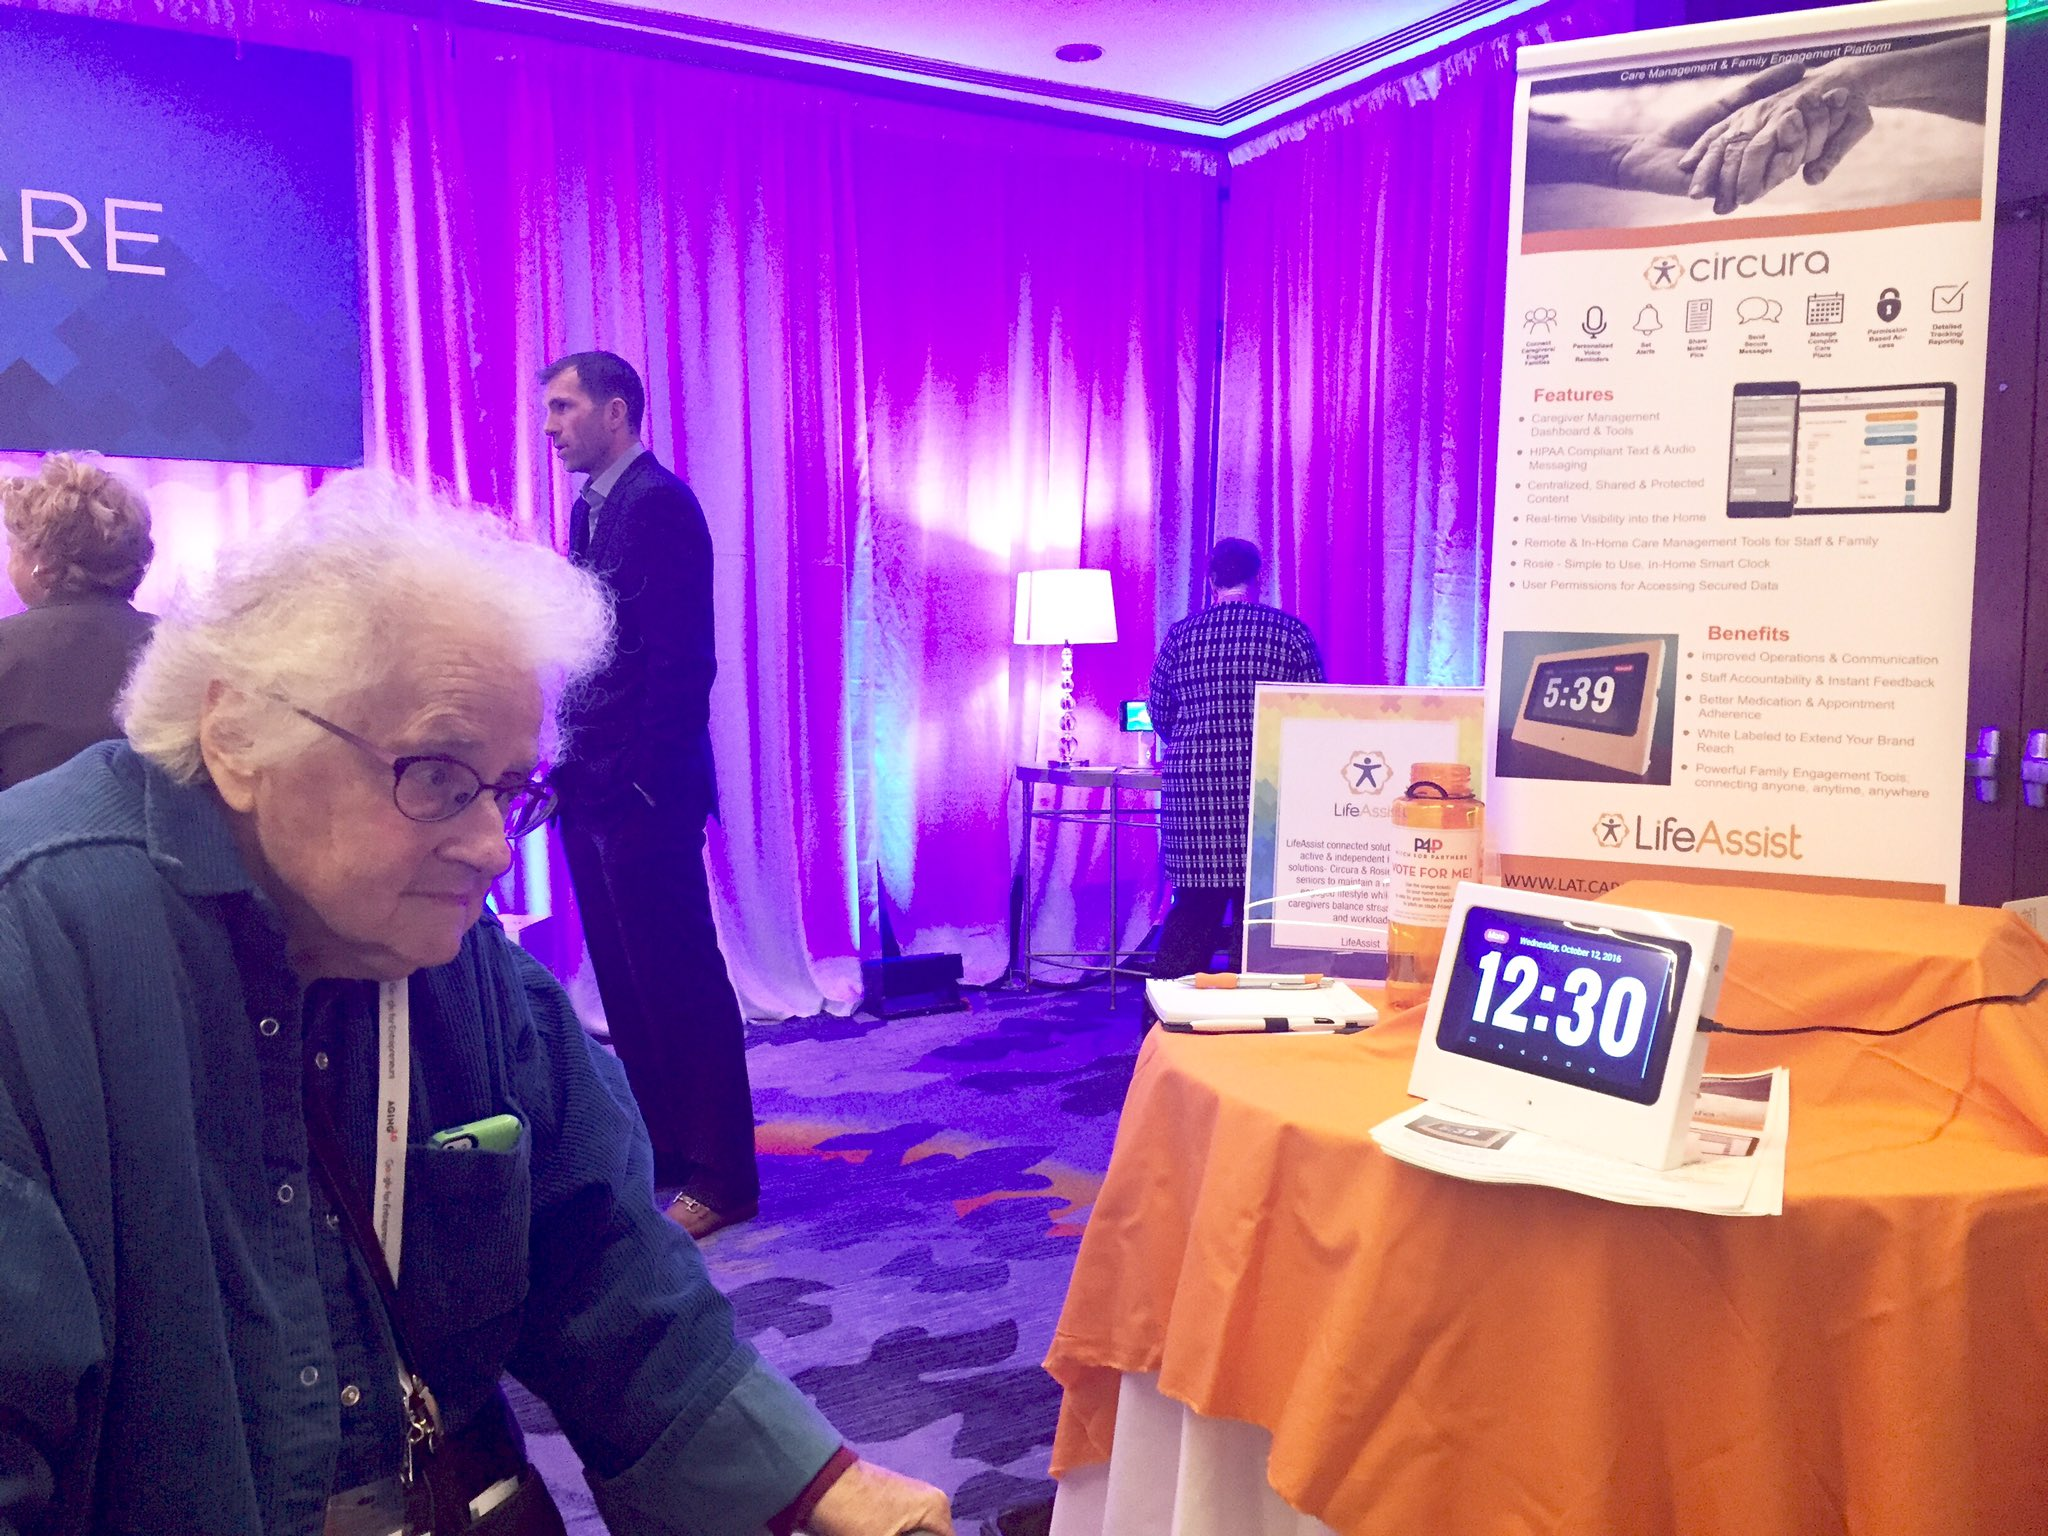 June is one tough user tester but really liked what she saw @joinlifeassist She's onboard to test #A2OPTIMIZE @Aging20 https://t.co/mLnpV0qpCc